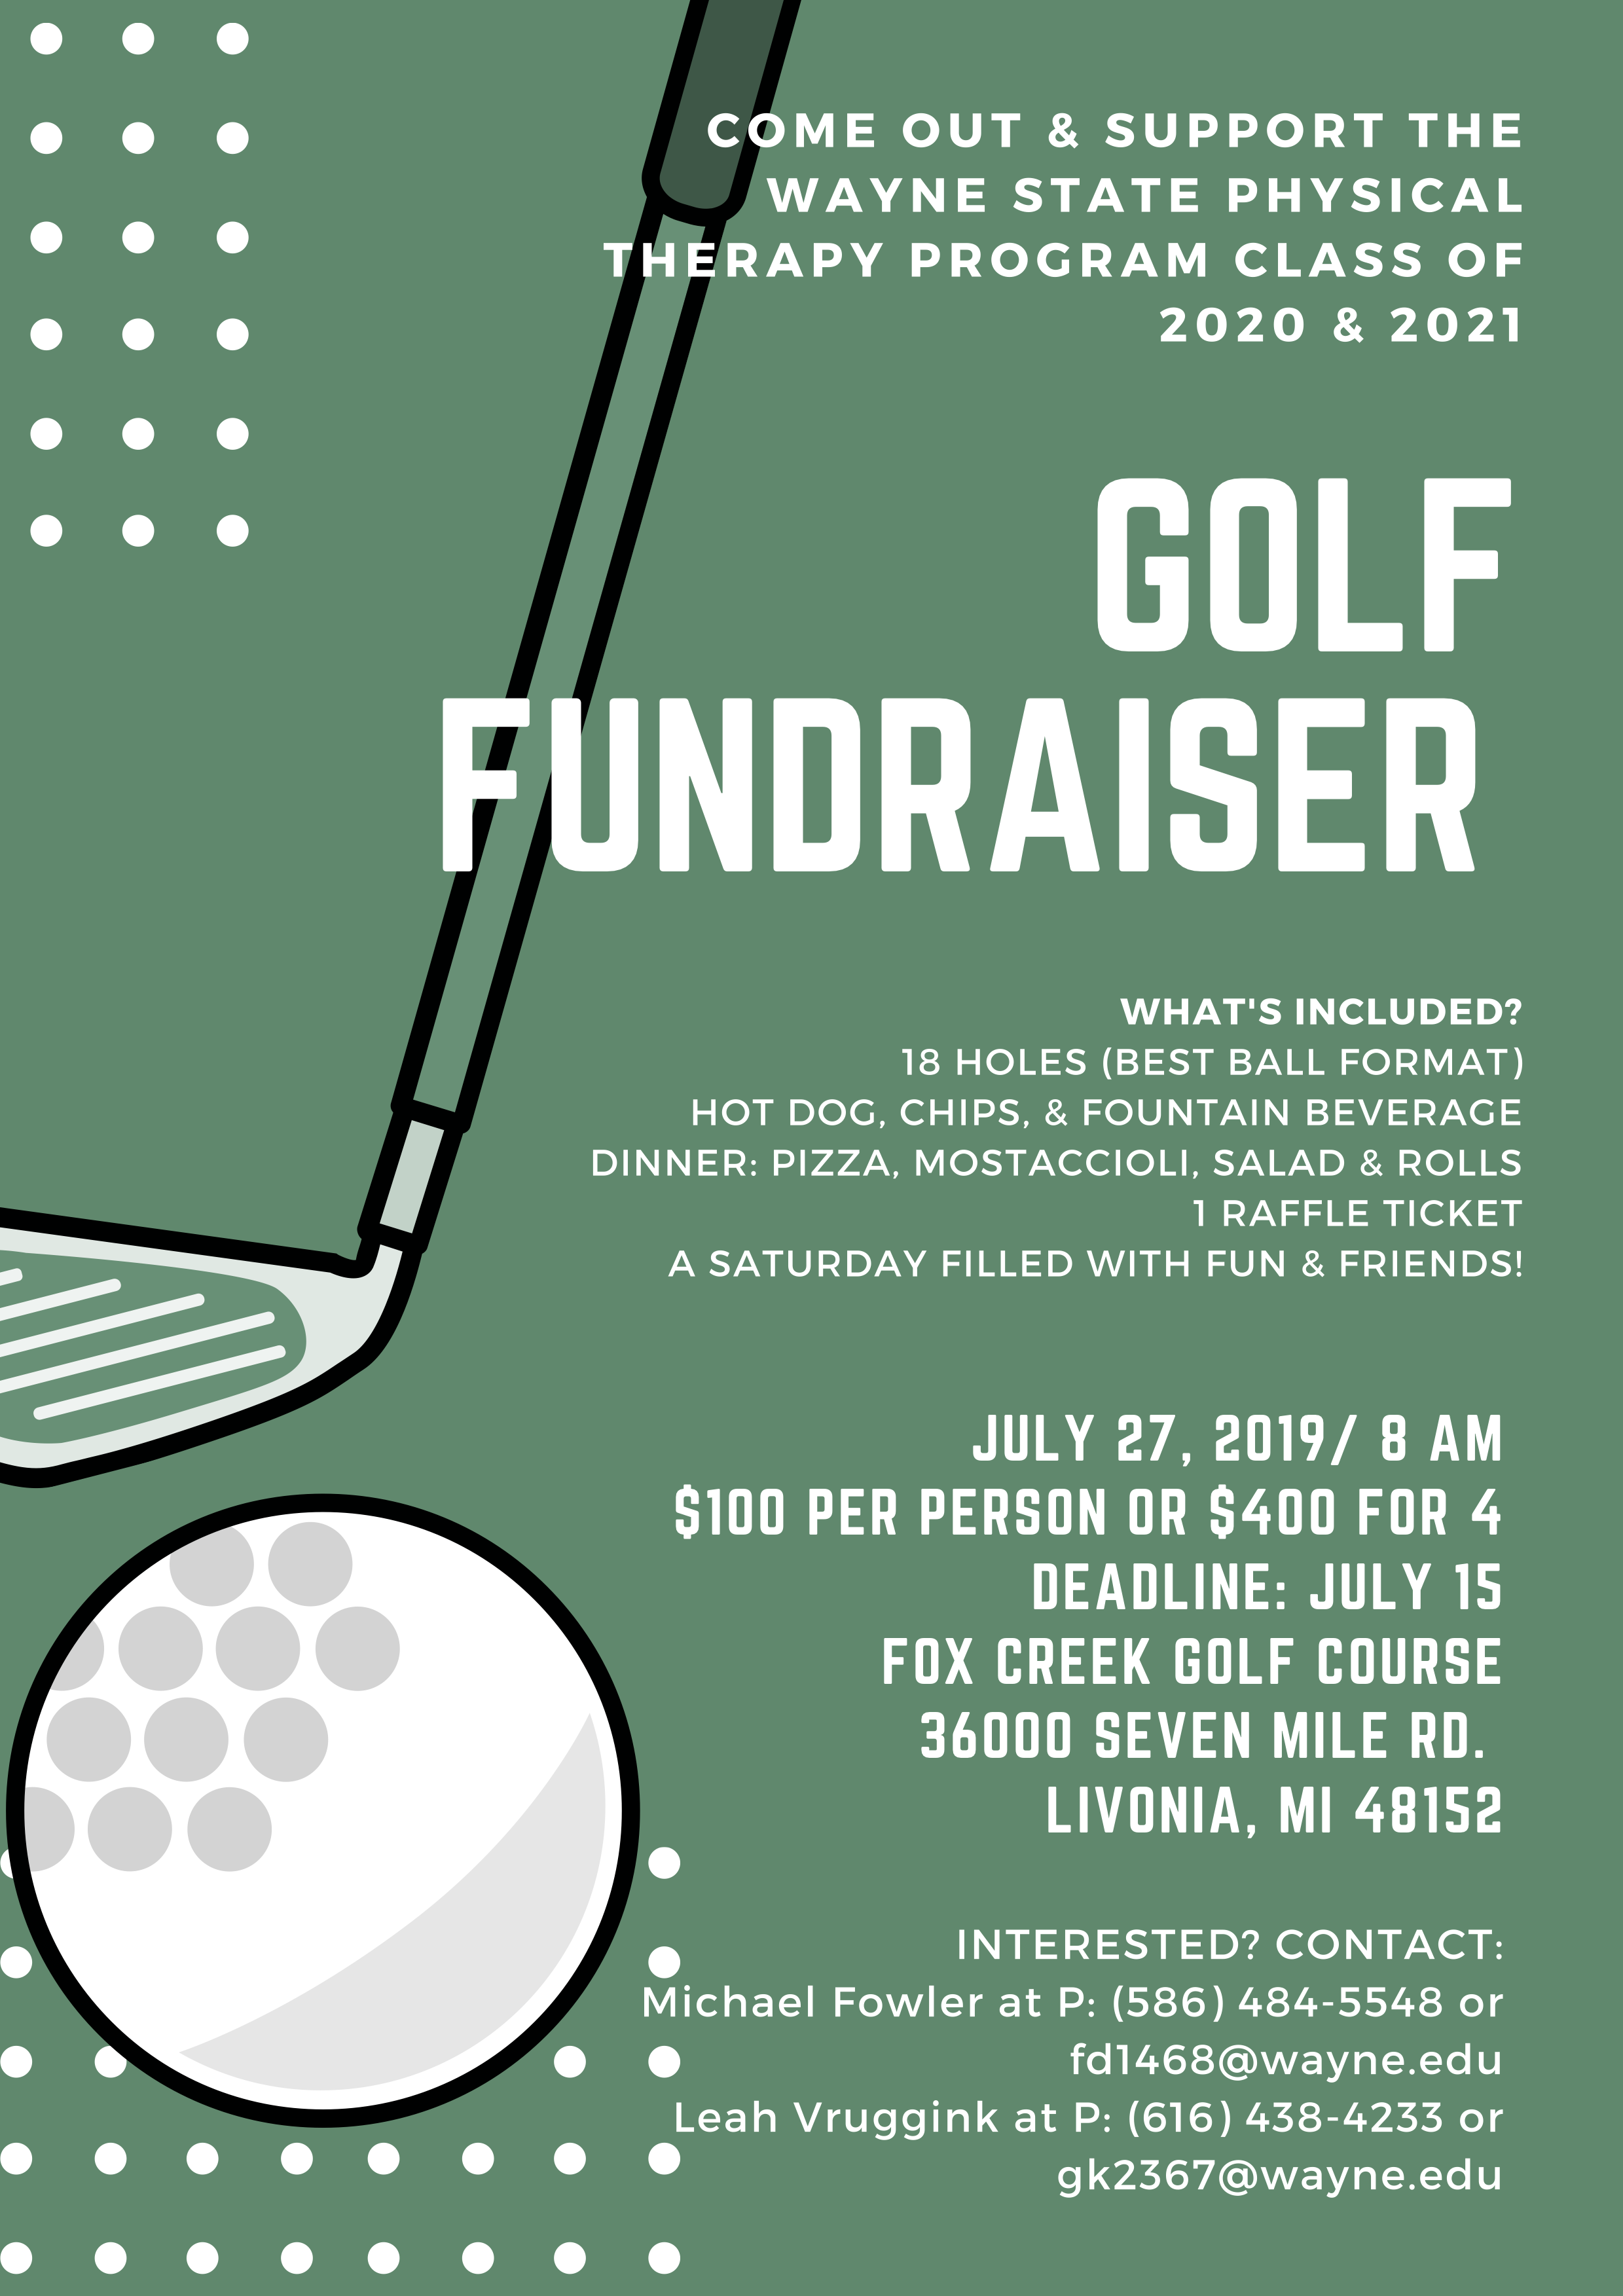 Wayne State PT Golf Fundraiser Flyer